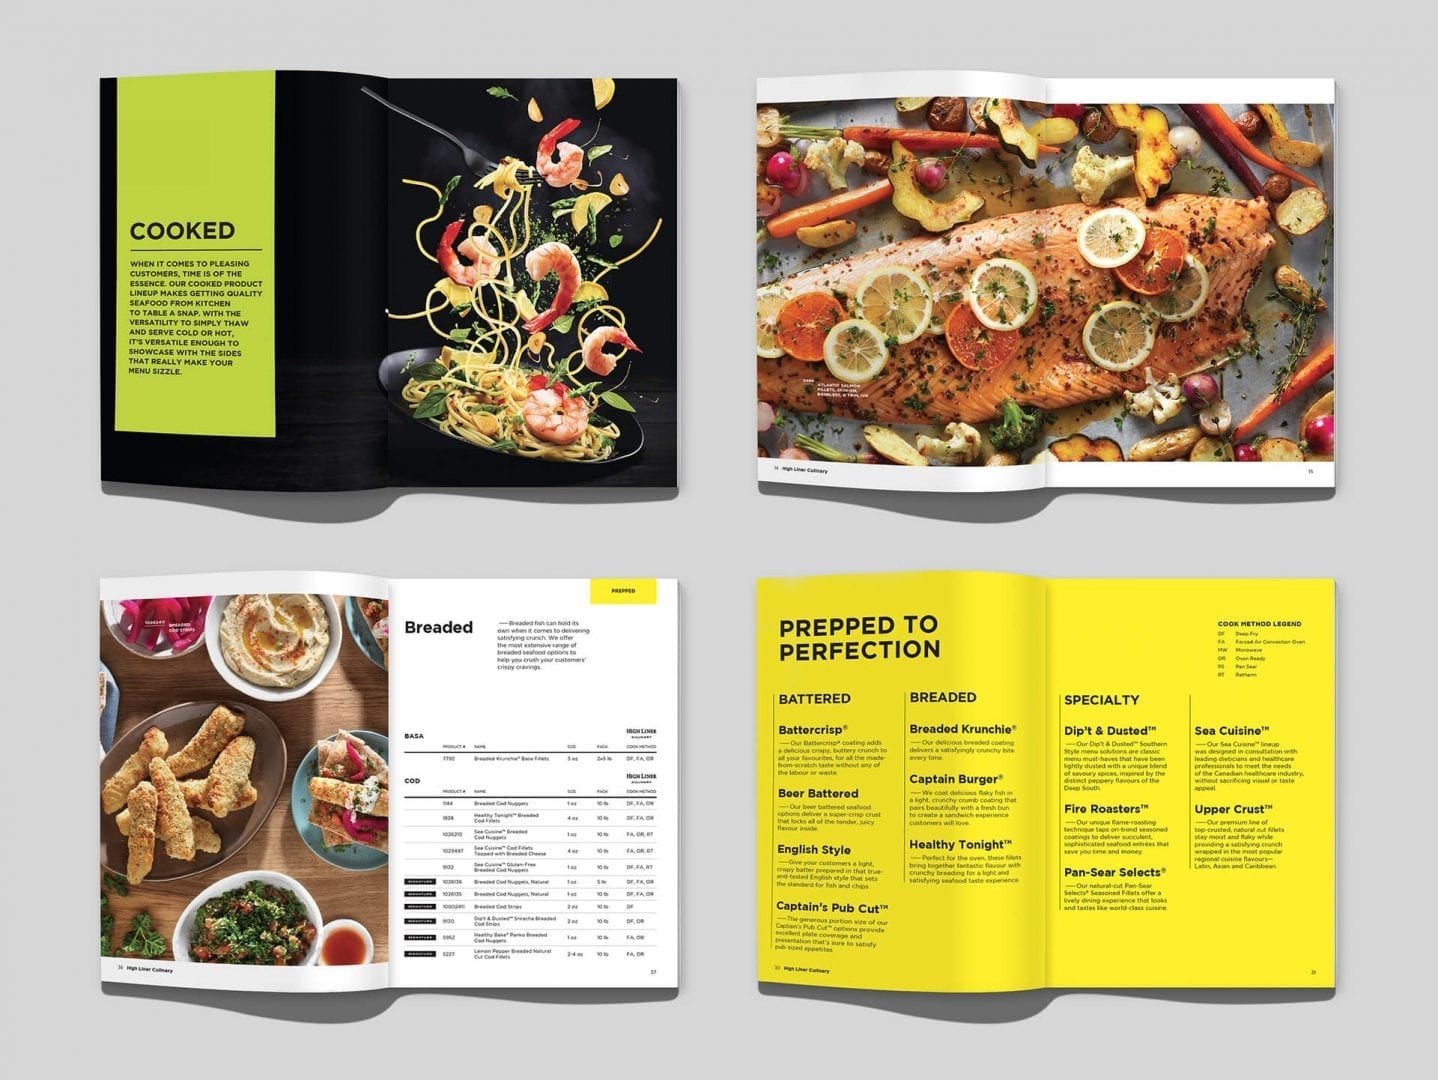 High Liner Culinary product catalog